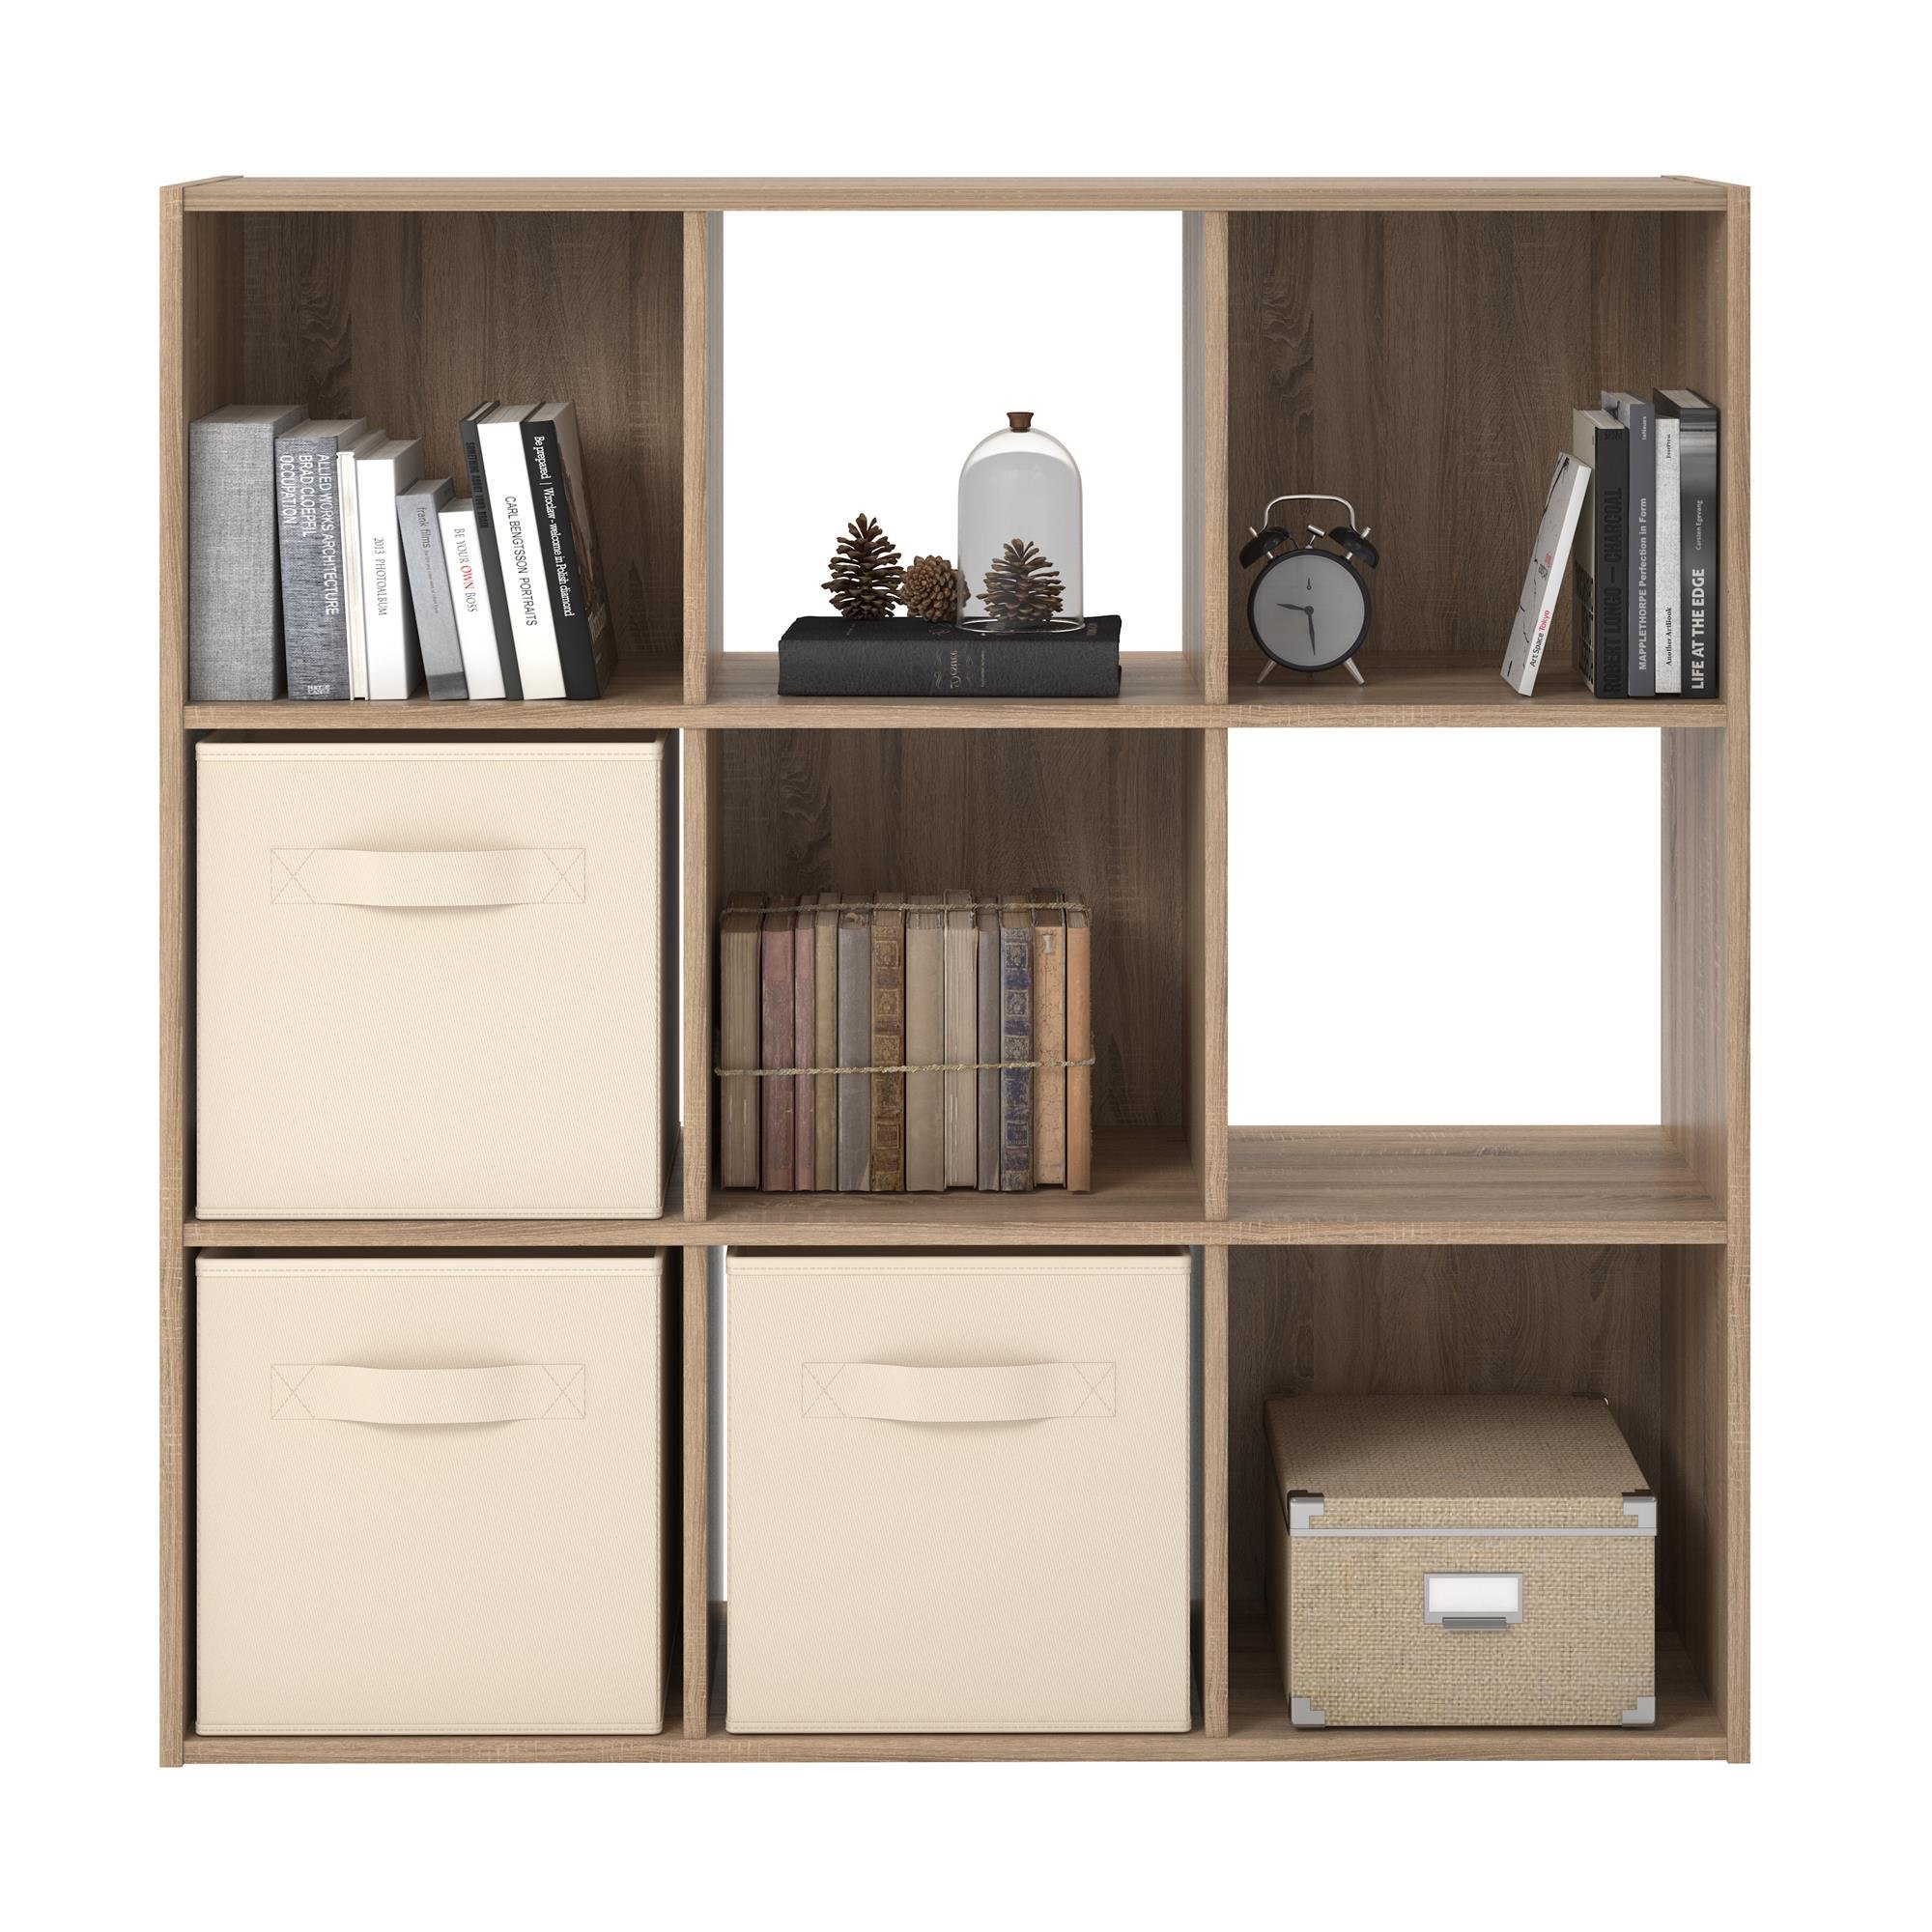 RealRooms Tally 9 Cube Bookcase, Weathered Oak by REALROOMS (Image #4)